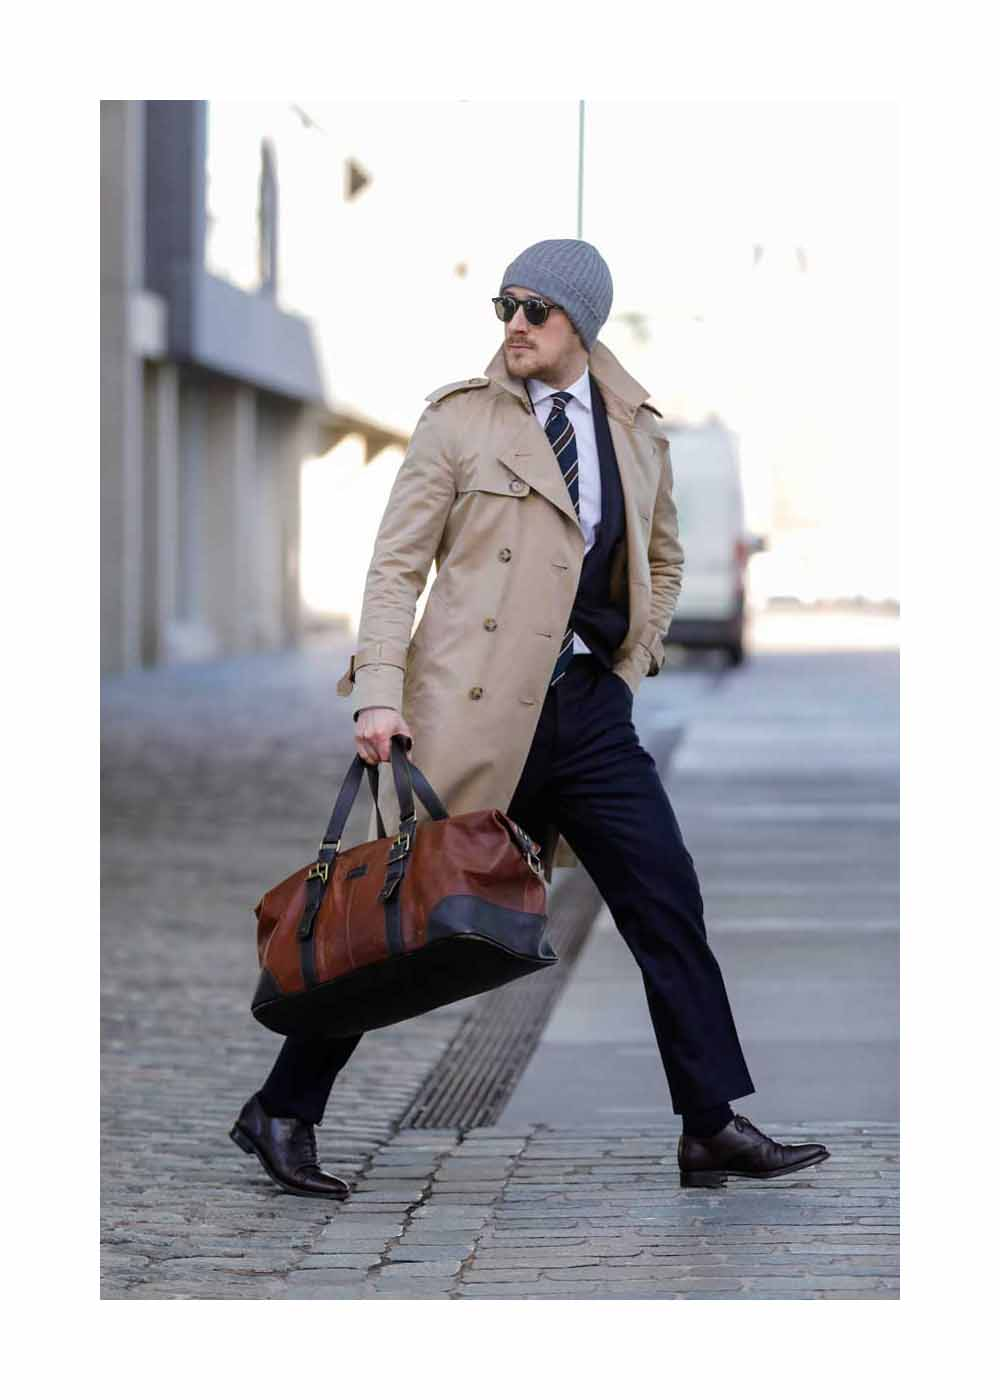 Johannes Laschet Streetstyle Shooting In Cologne